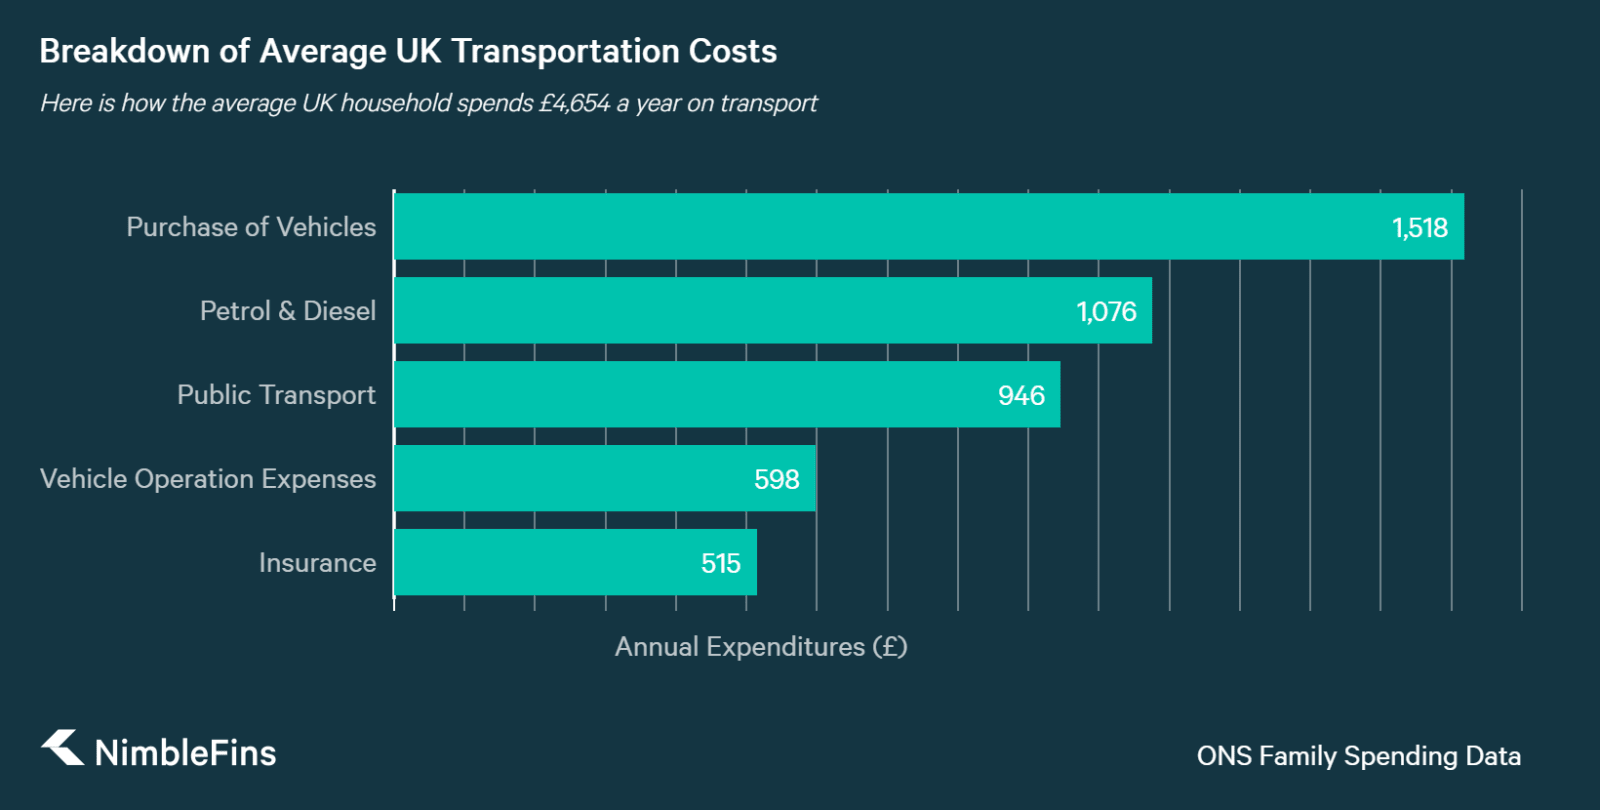 Chart showing breakdown of average UK household transportation costs, including purchase, petrol & diesel, insurance, public transport, etc.